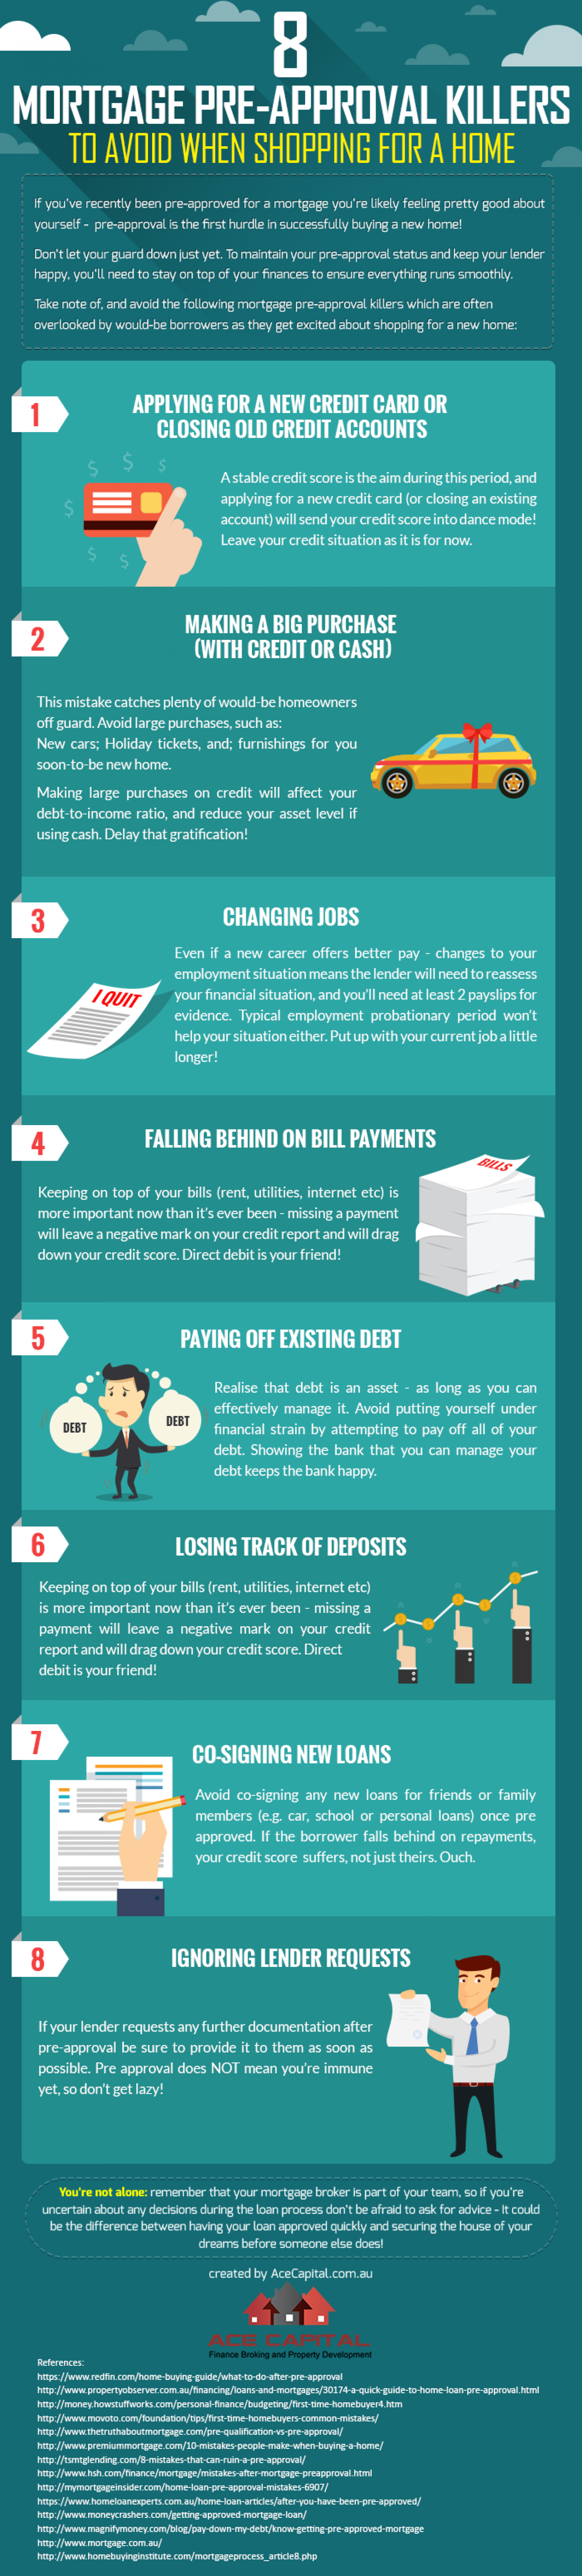 Mortgage/Home Loan Pre Approval Killers Infographic